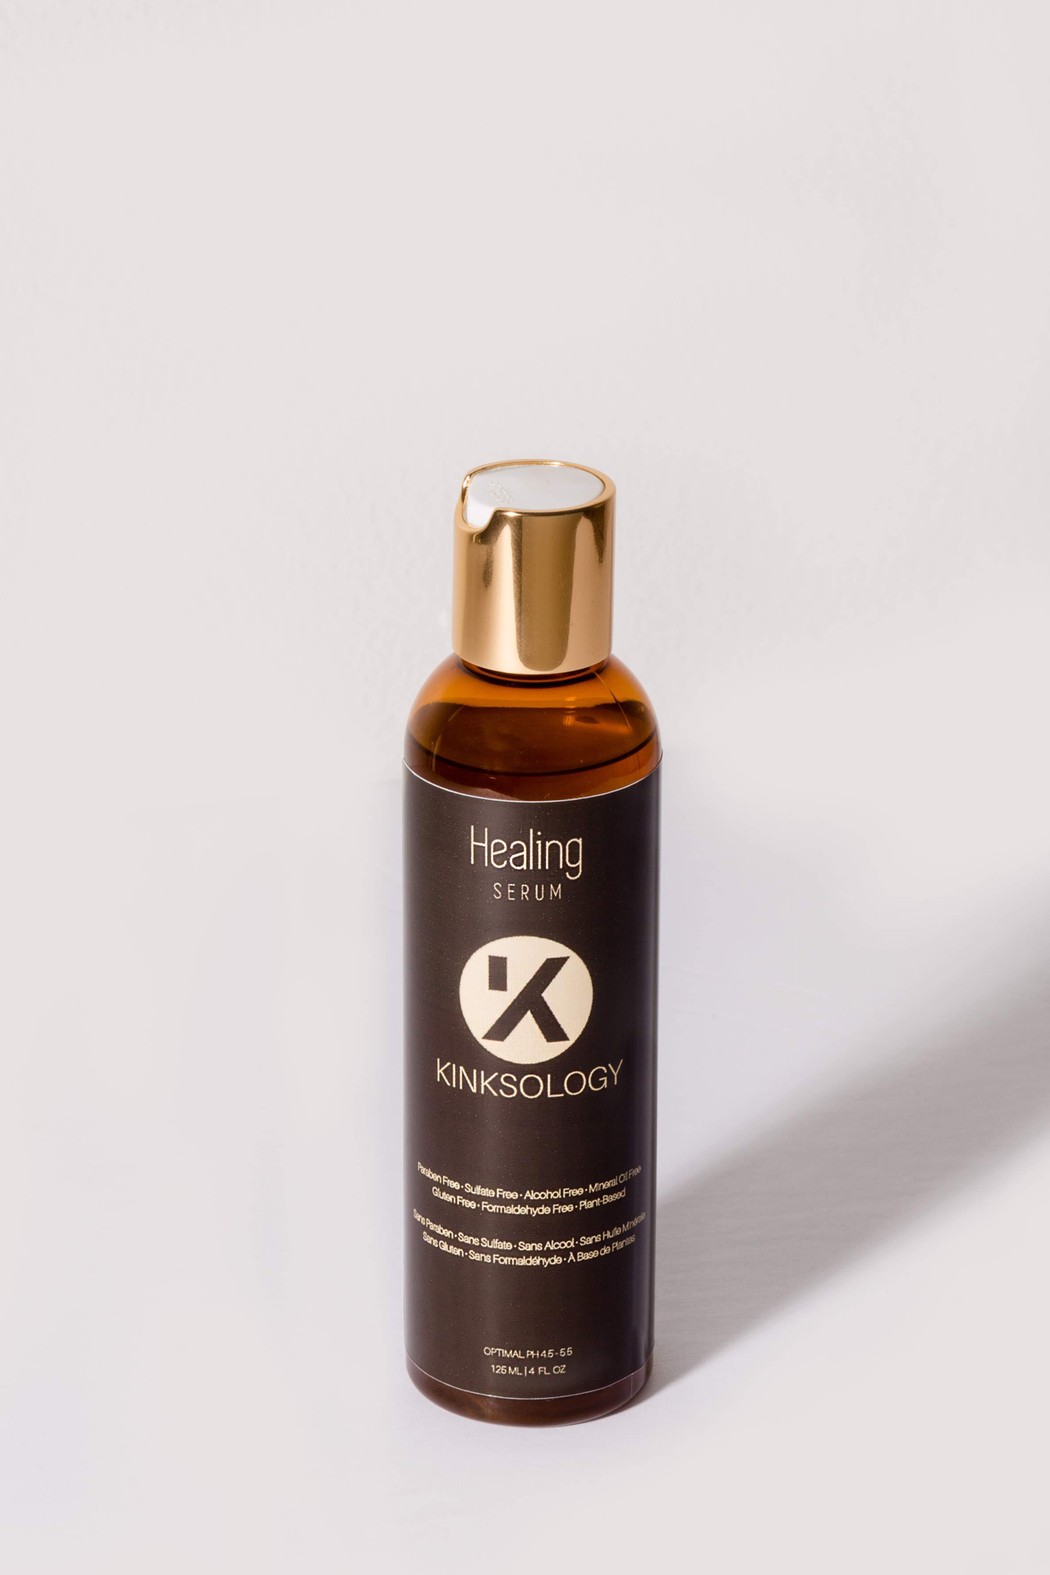 Kinksology Healing Serum